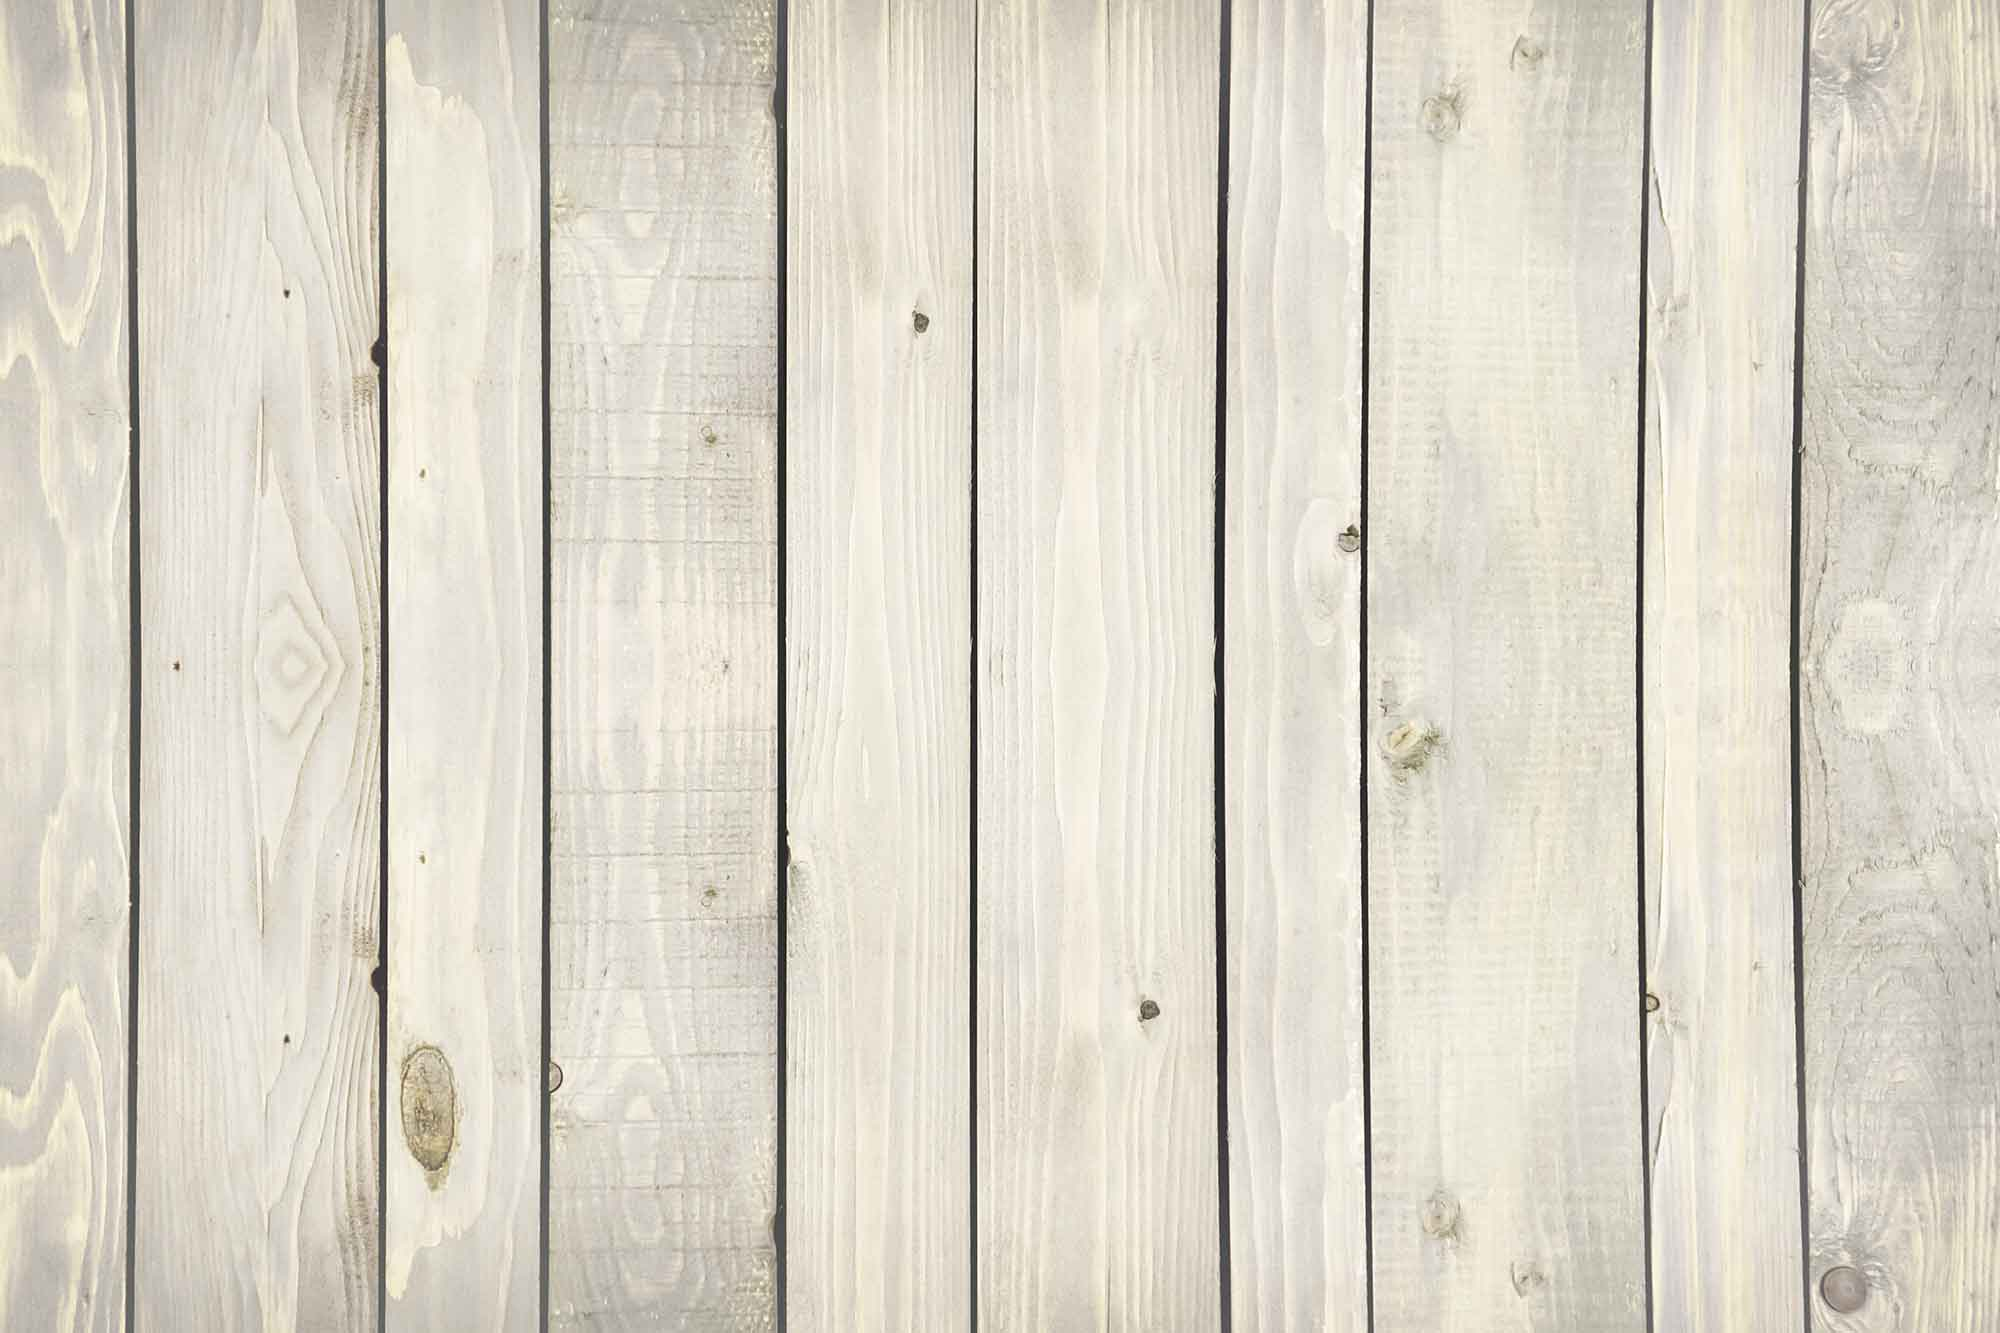 Light Wood Background Texture 2